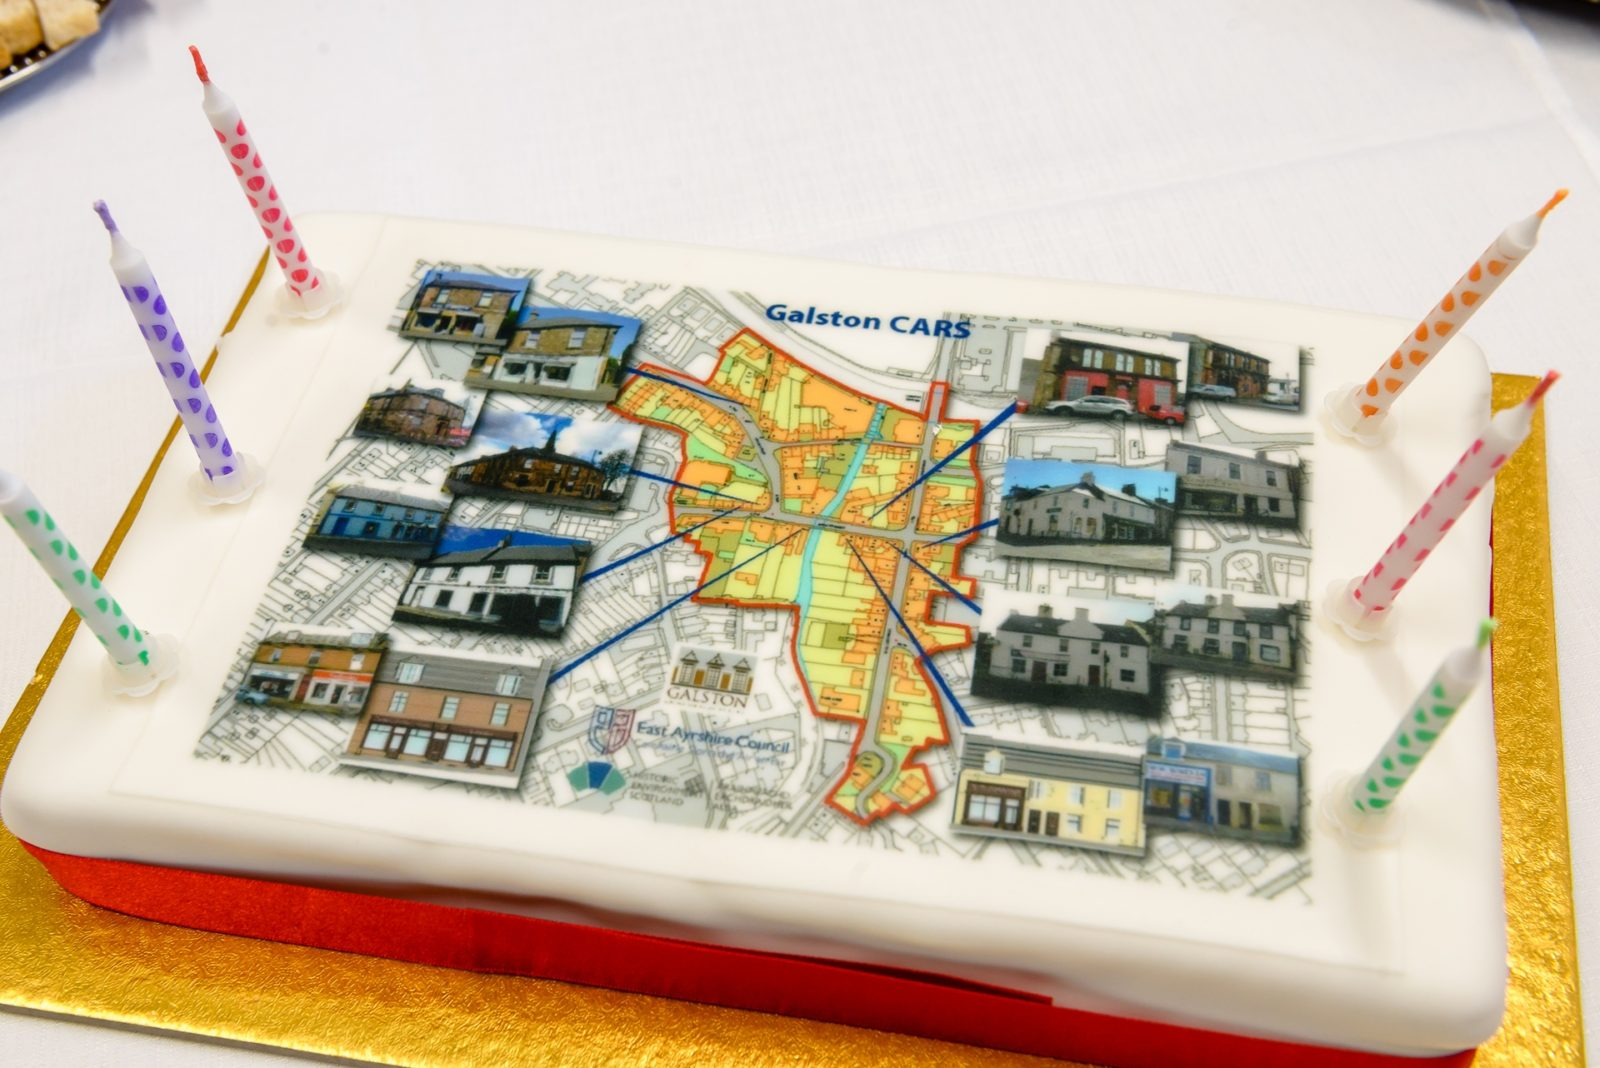 A specially decorated cake at an event to celebrate the Galston CARS which took place on Monday 18 June 2018 in Galston, East Ayrshire. The Conservation Area Regeneration Scheme has seen many historic building in the town refurbished and brought back into use